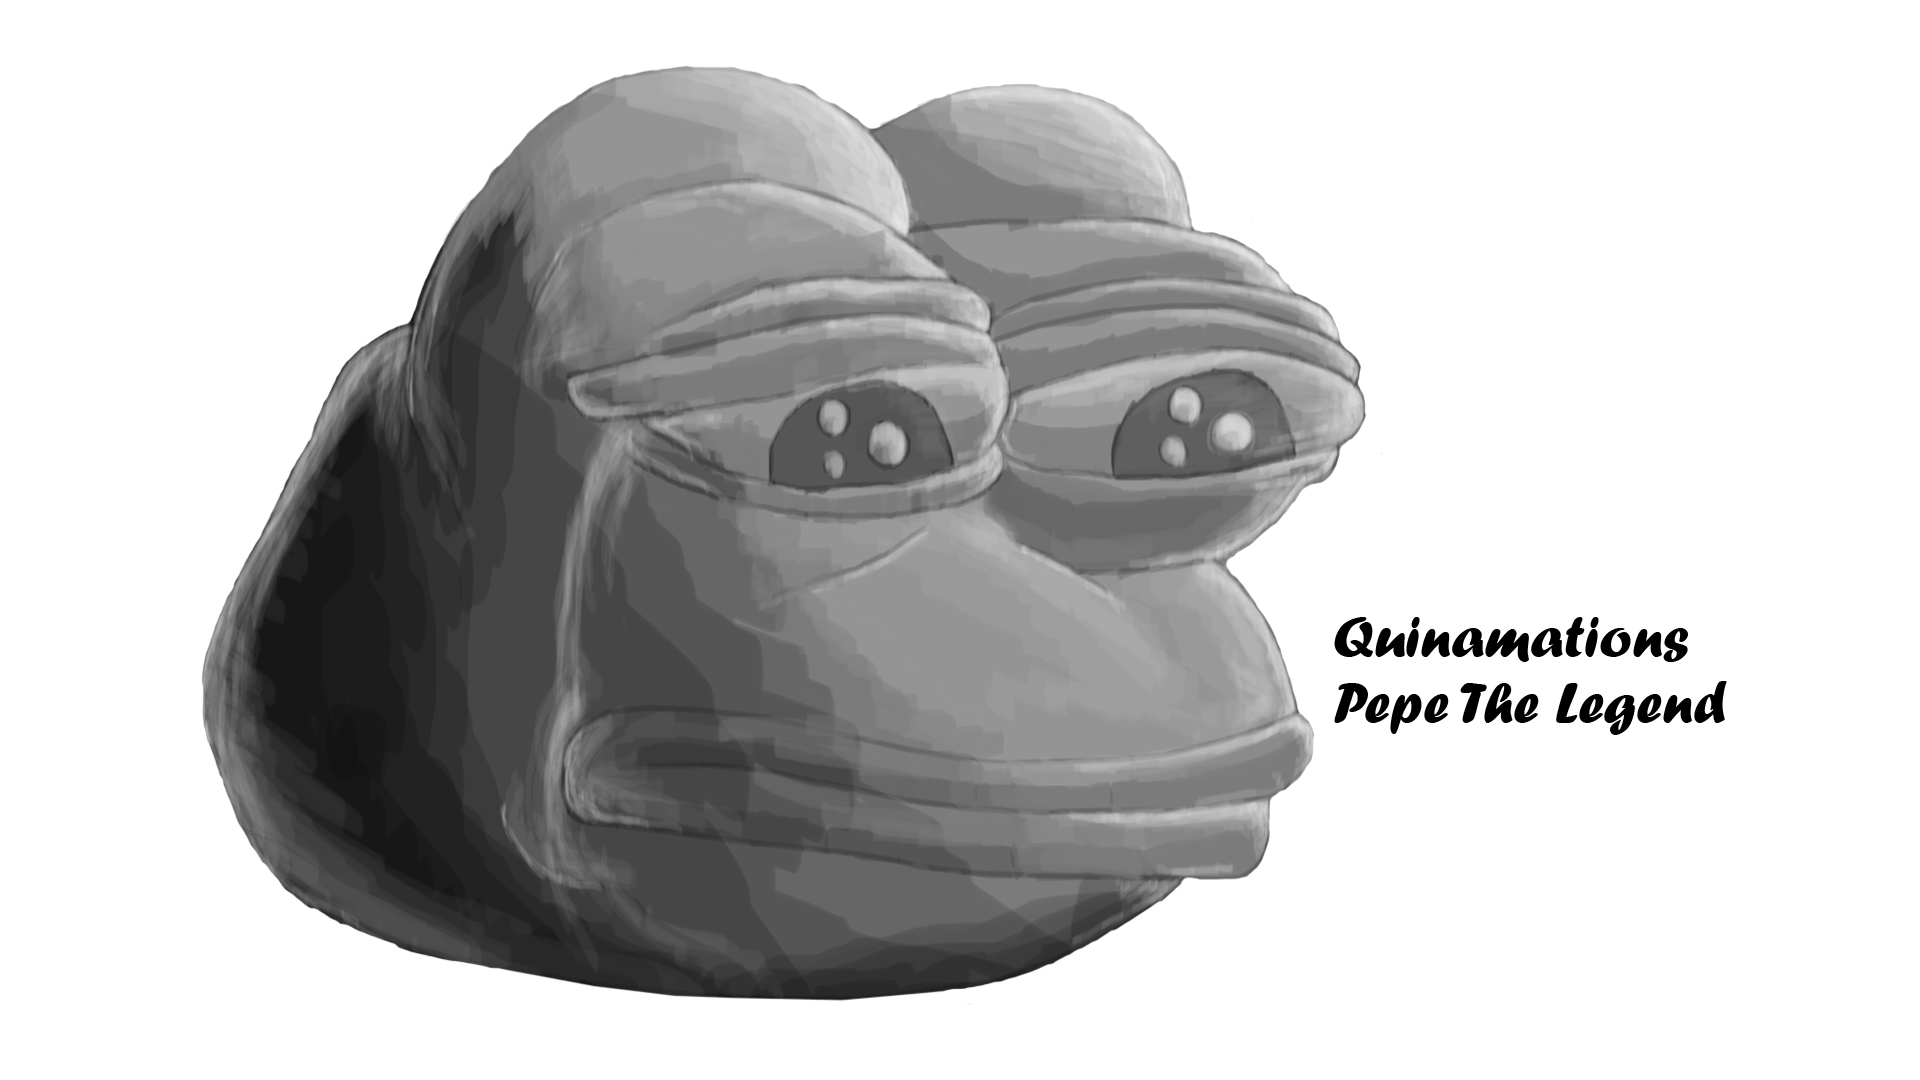 Quinamations - Pepe The Legend